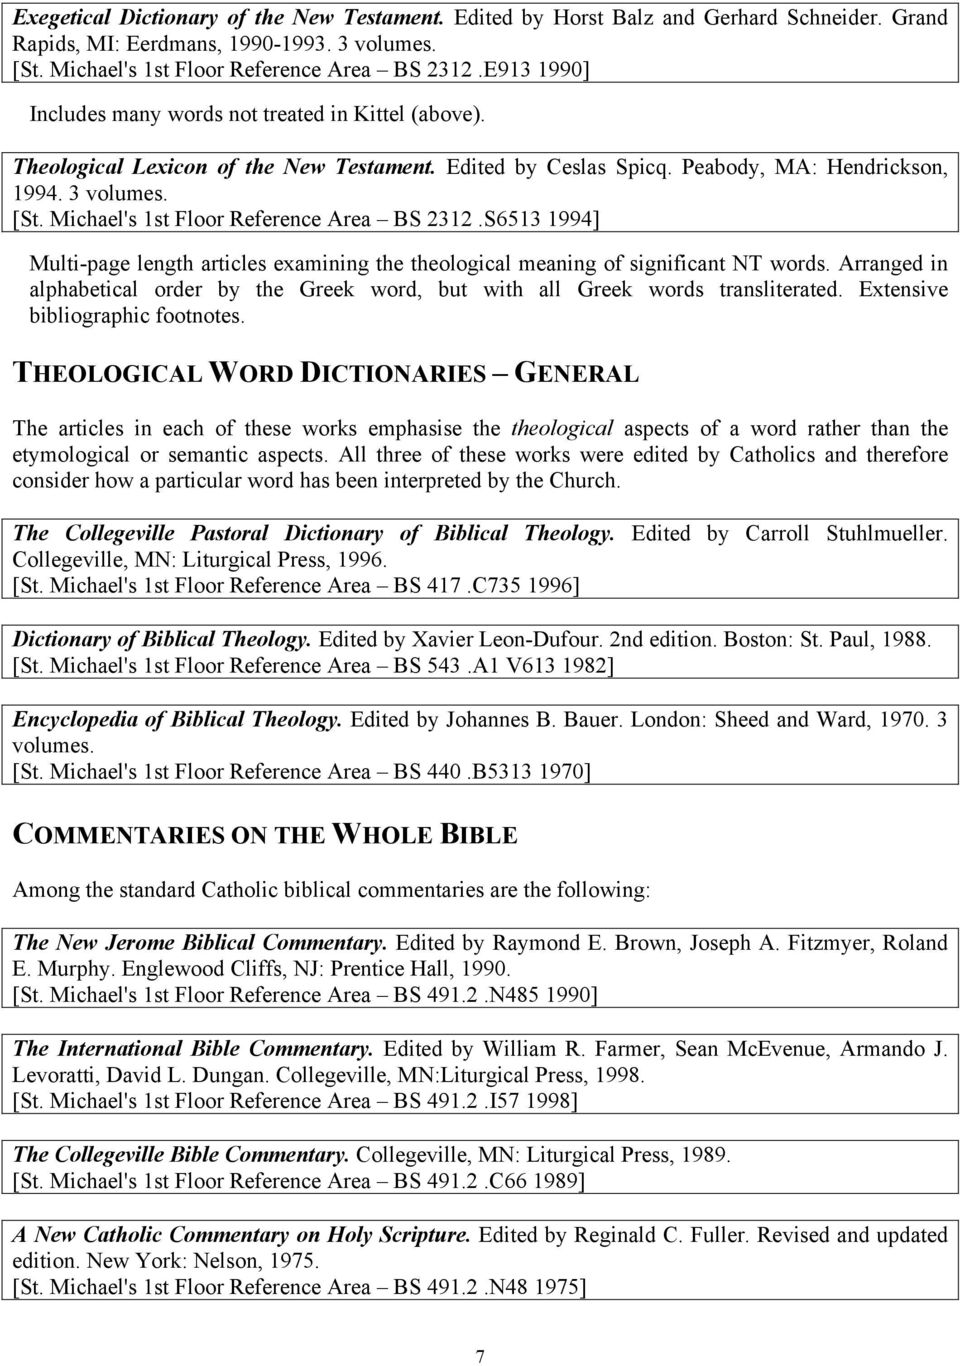 Research Guide to The Bible - PDF